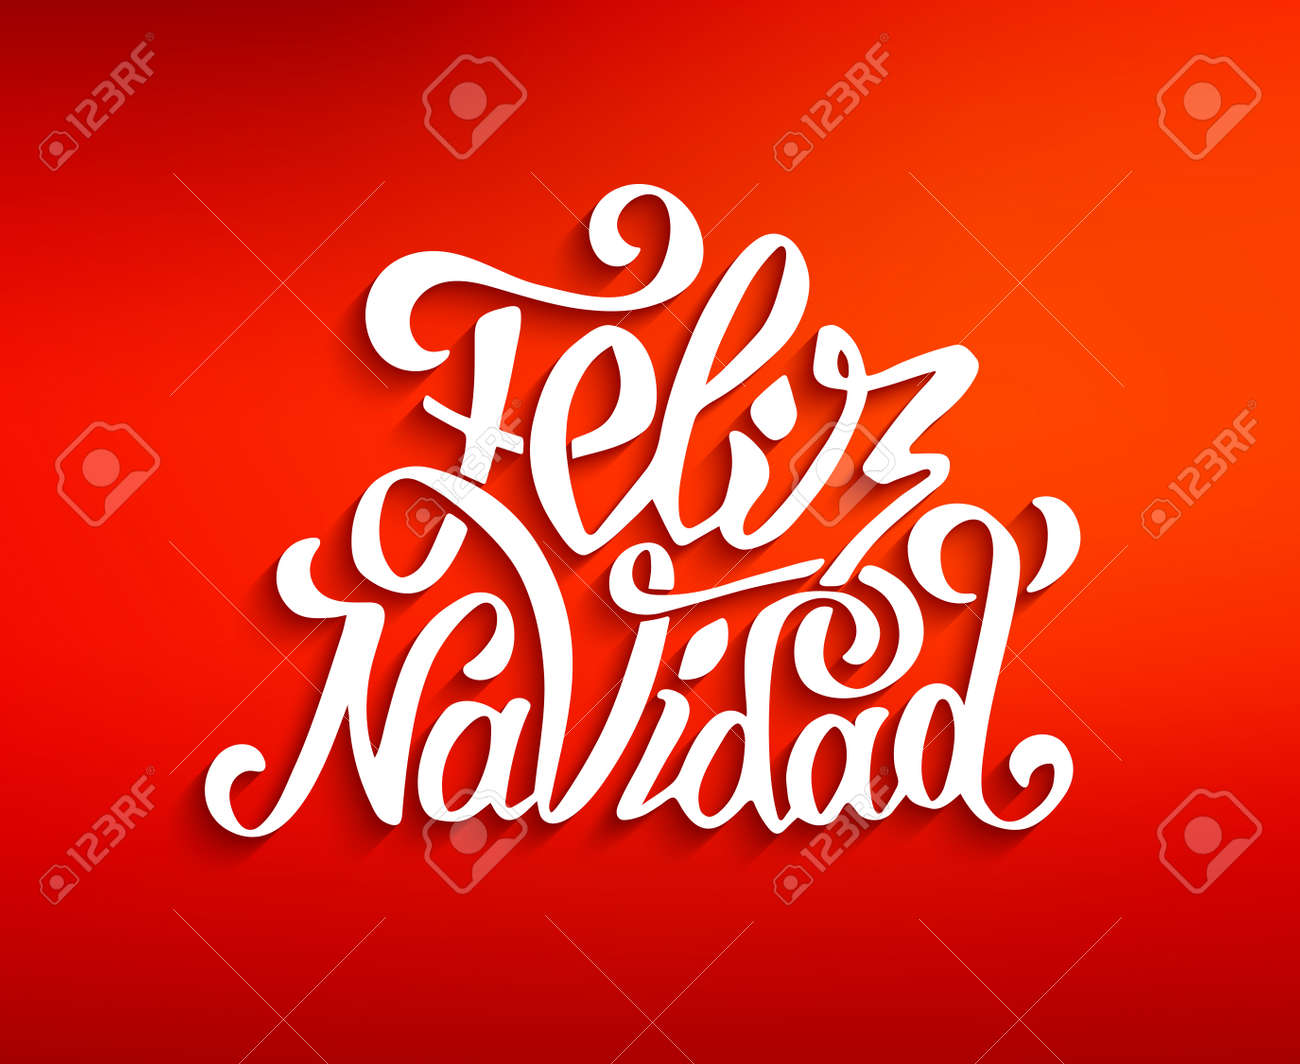 Feliz Navidad Lettering For Invitation Prints And Greeting Cards